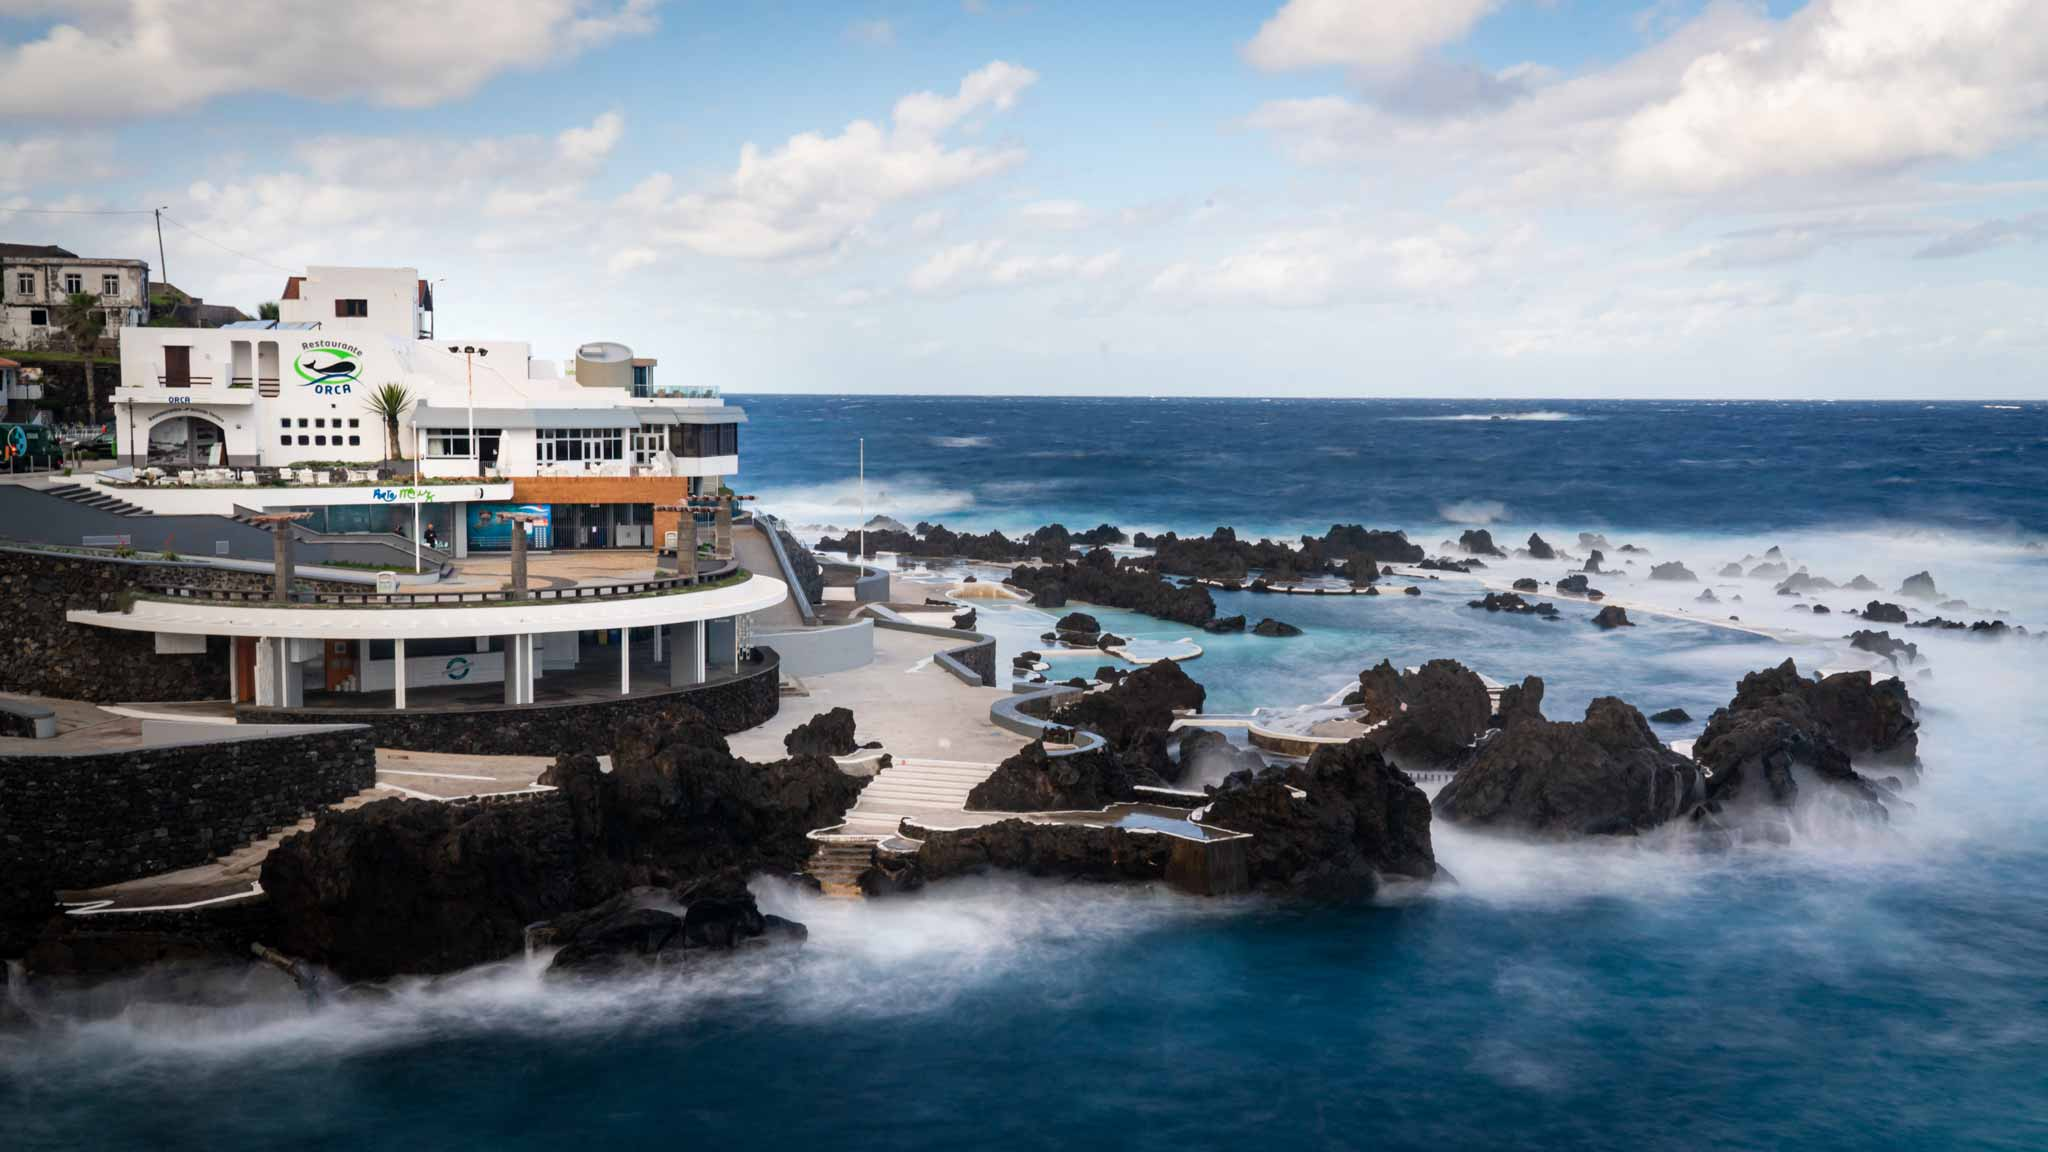 The ocean swimming pools of Porto Moniz surrounded by the sea and light waves